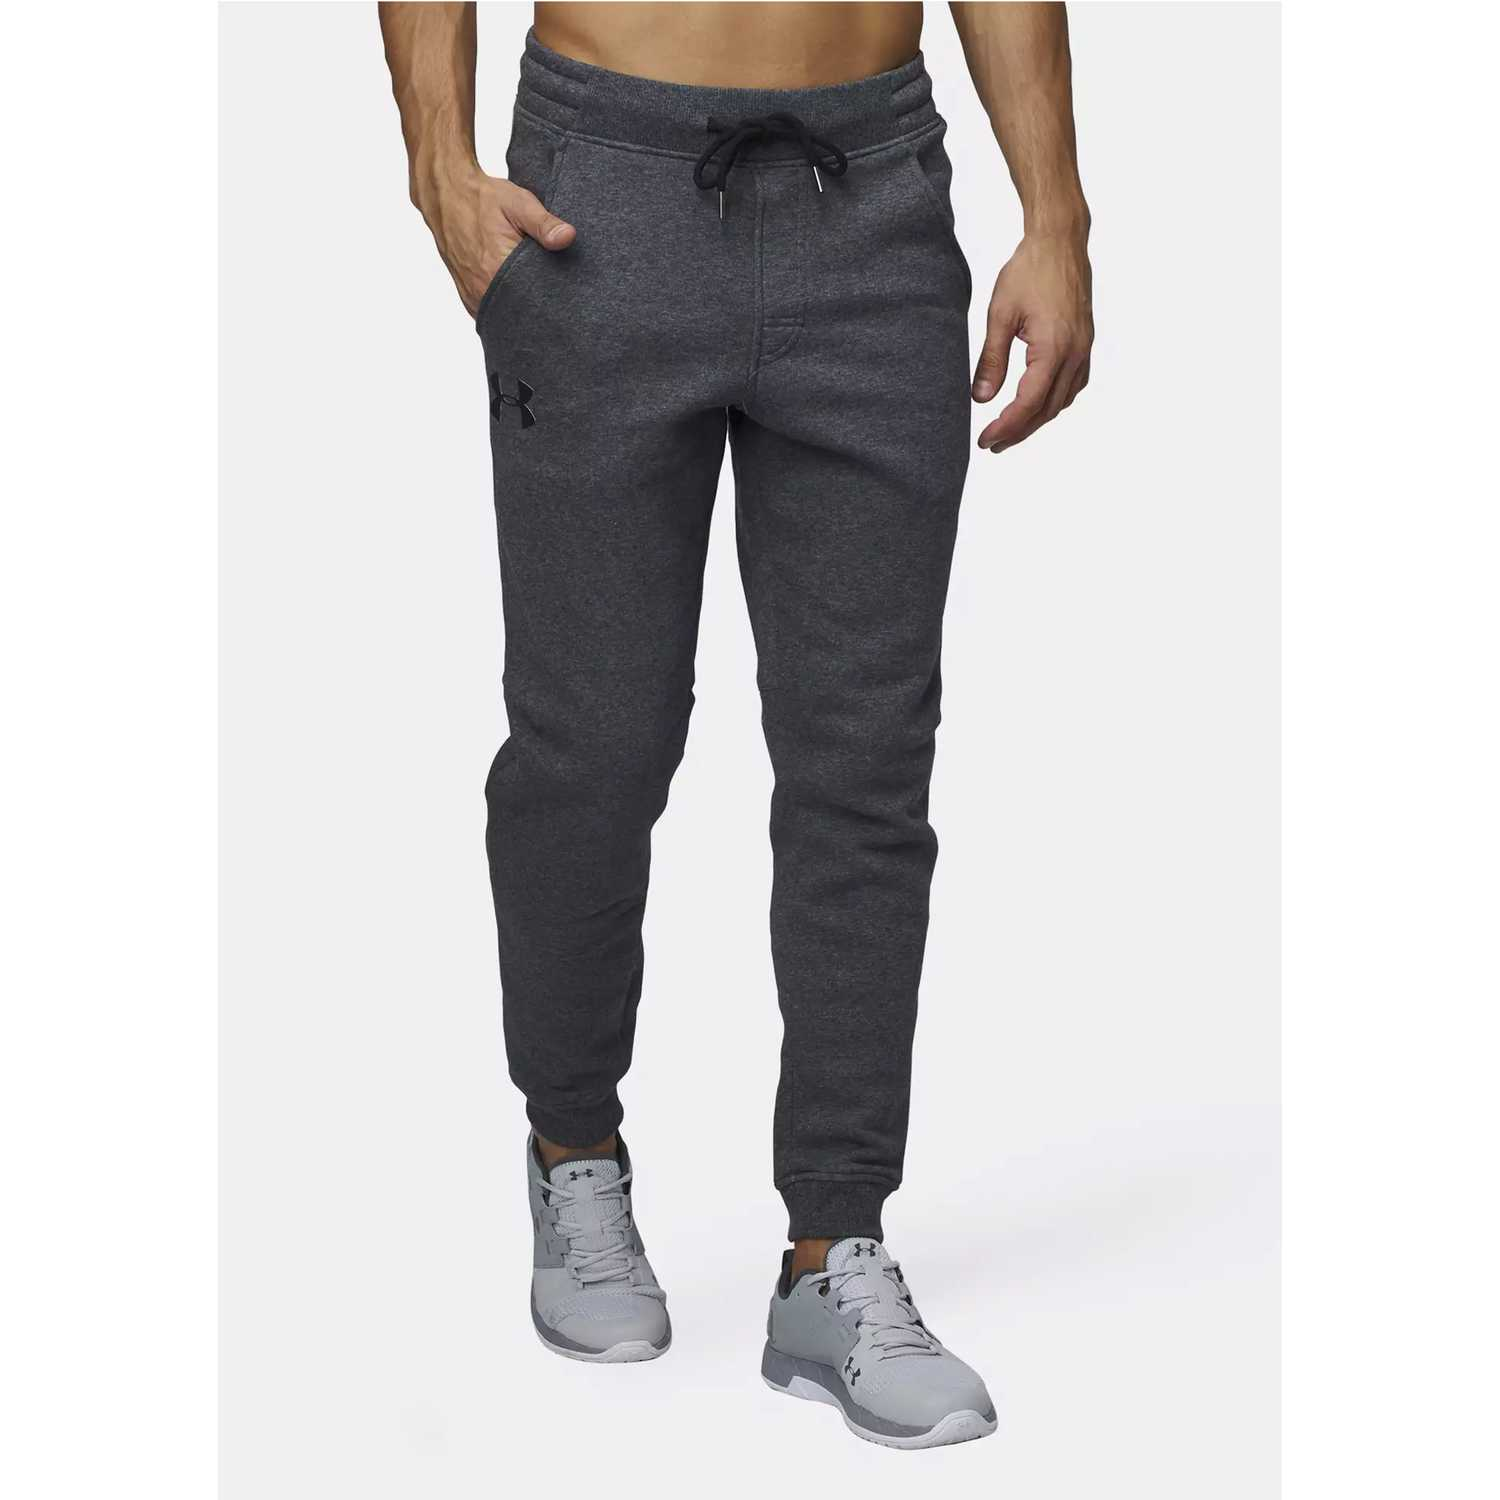 Under Armour rival fitted tapered jogger Gris Pantalones Deportivos